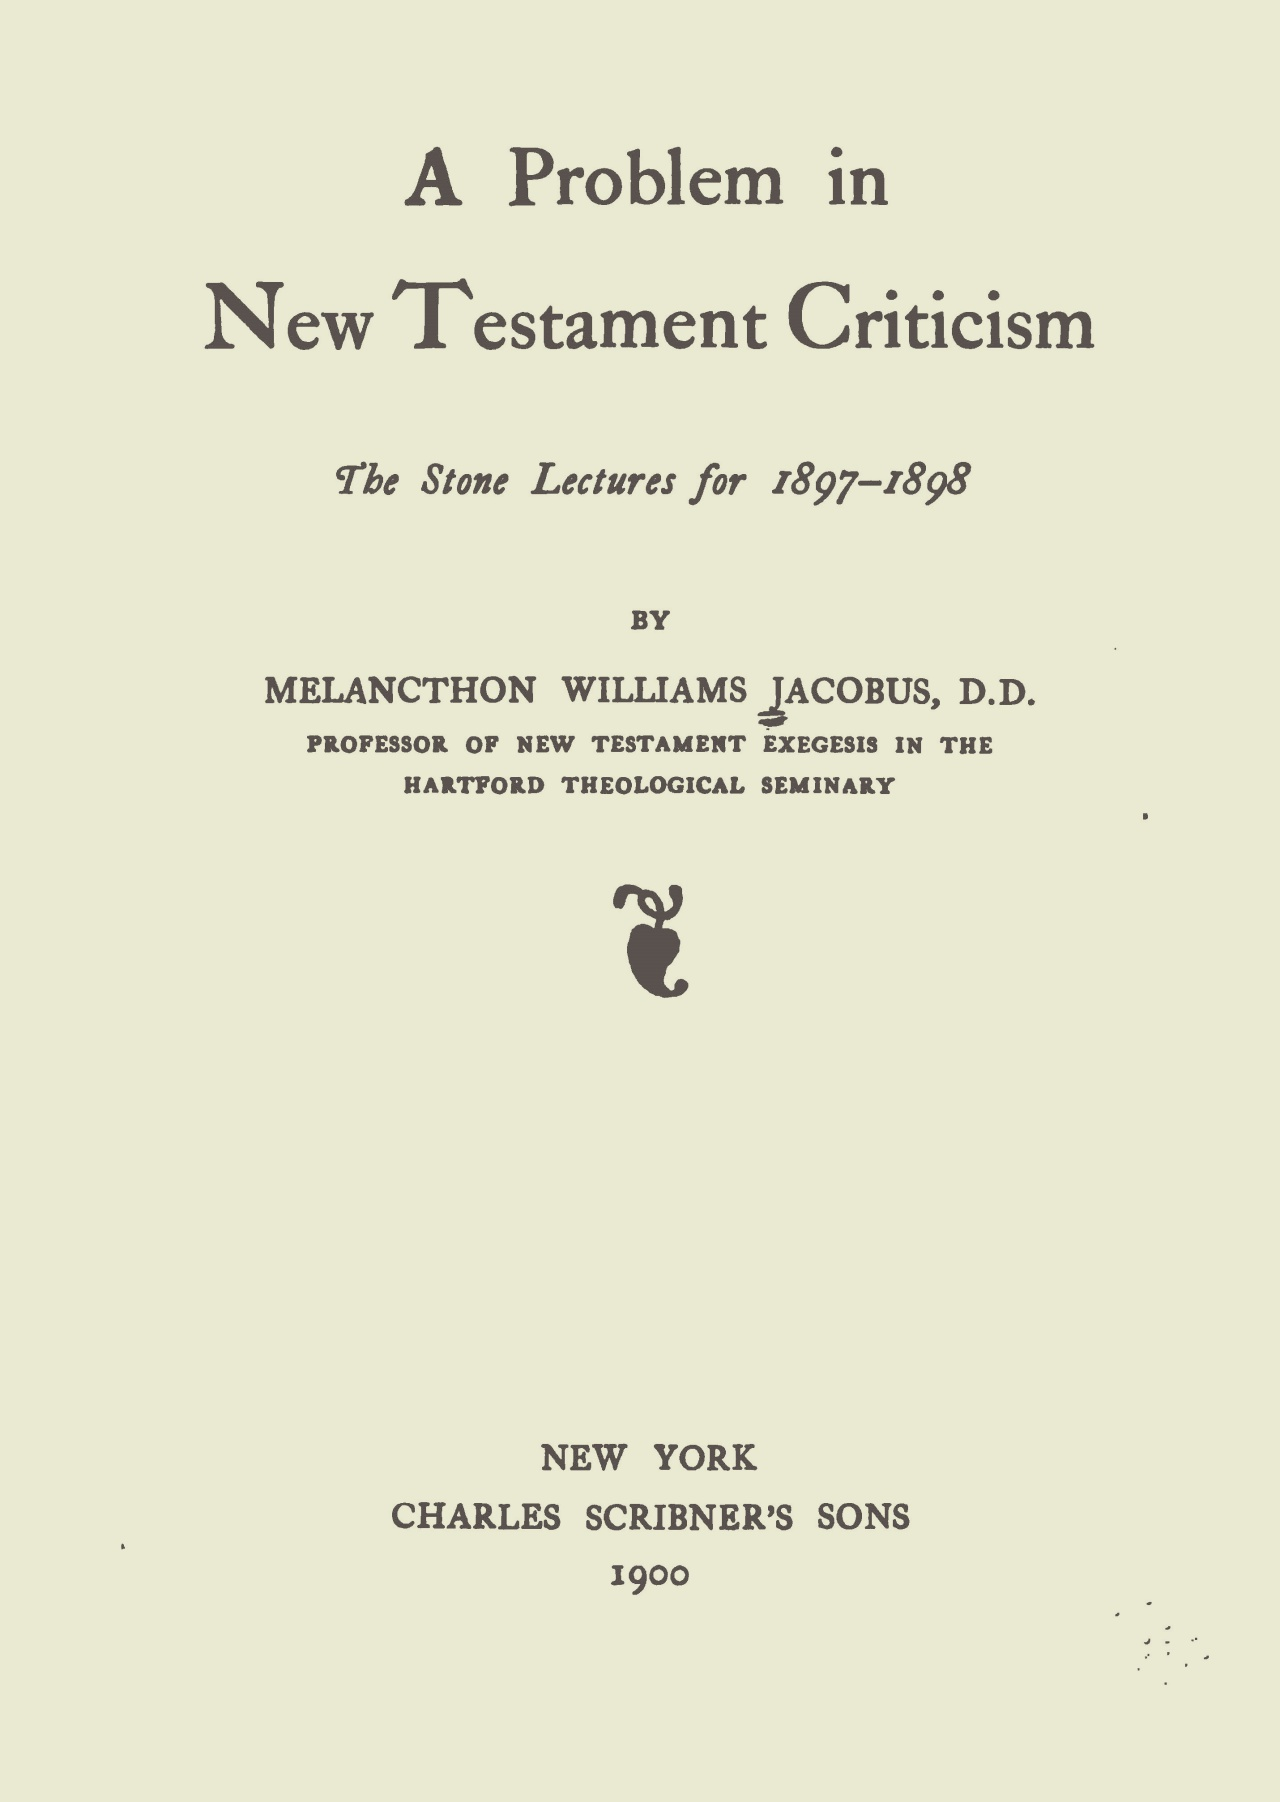 Jacobus, Jr., Melancthon Williams, A Problem in New Testament Criticism Title Page.jpg